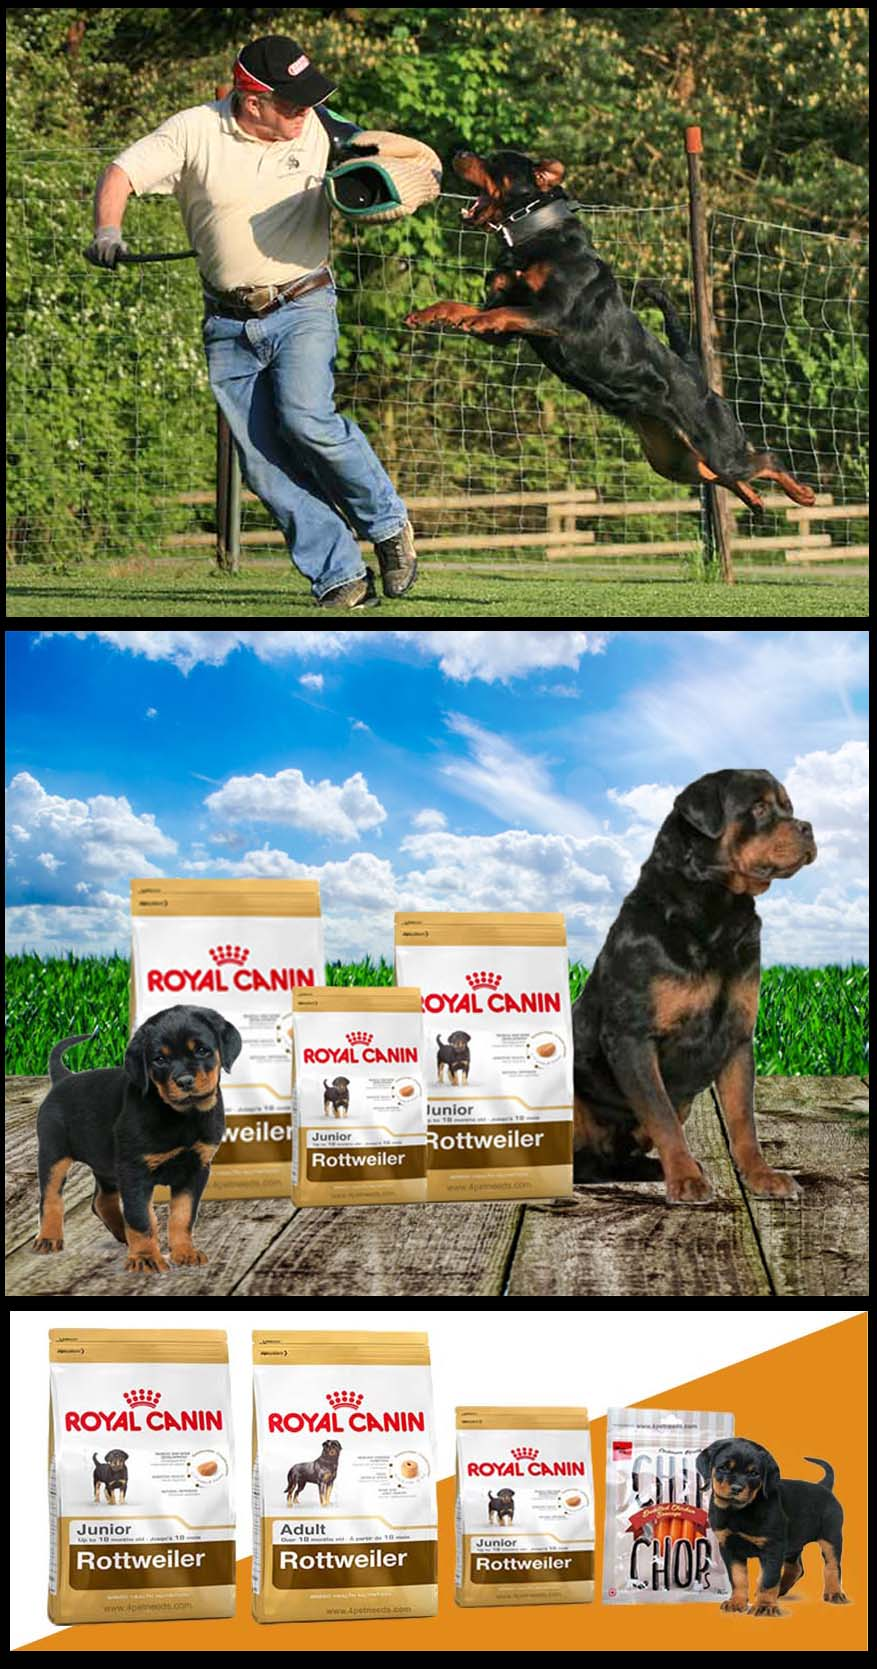 Best Royal Canin Products Fit For Proper Pup's Health Growth